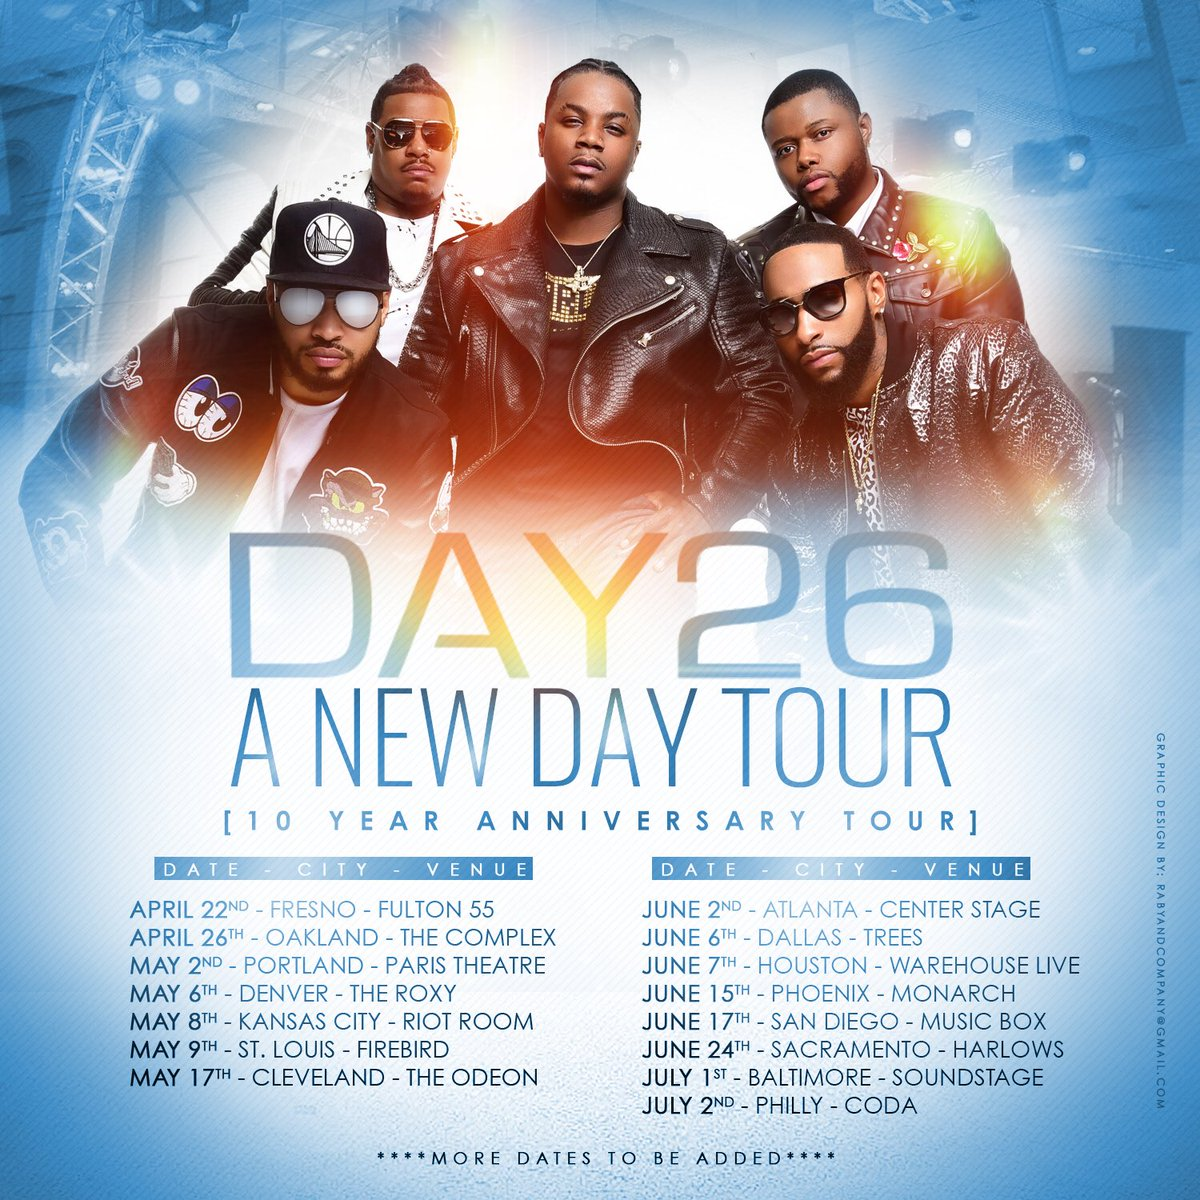 """Tour!!!! We're super excited to head out on the DAY26 """"A New Day"""" 10th Year Anniversary Tour, Get ready for this ultimate DAY26 experience !!!!! Tickets available NOW for select cities: https://t.co/S8InZYExGP (More Dates To Be Added) #BeenDownSinceDay26 #ANewDayTour https://t.co/YiRCf09nXn"""